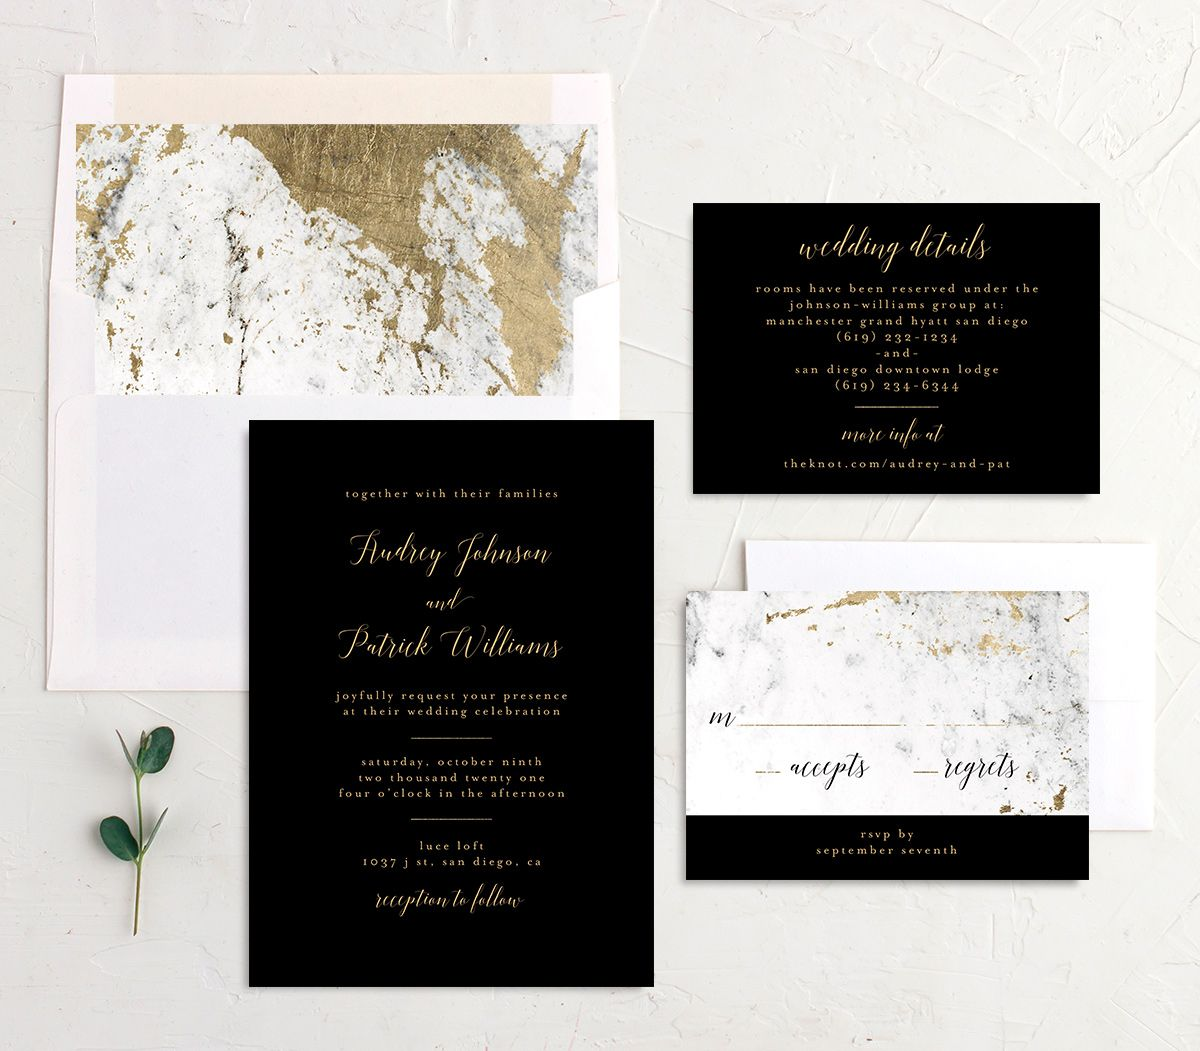 Marble and Gold Wedding Invitation Suite shown in black